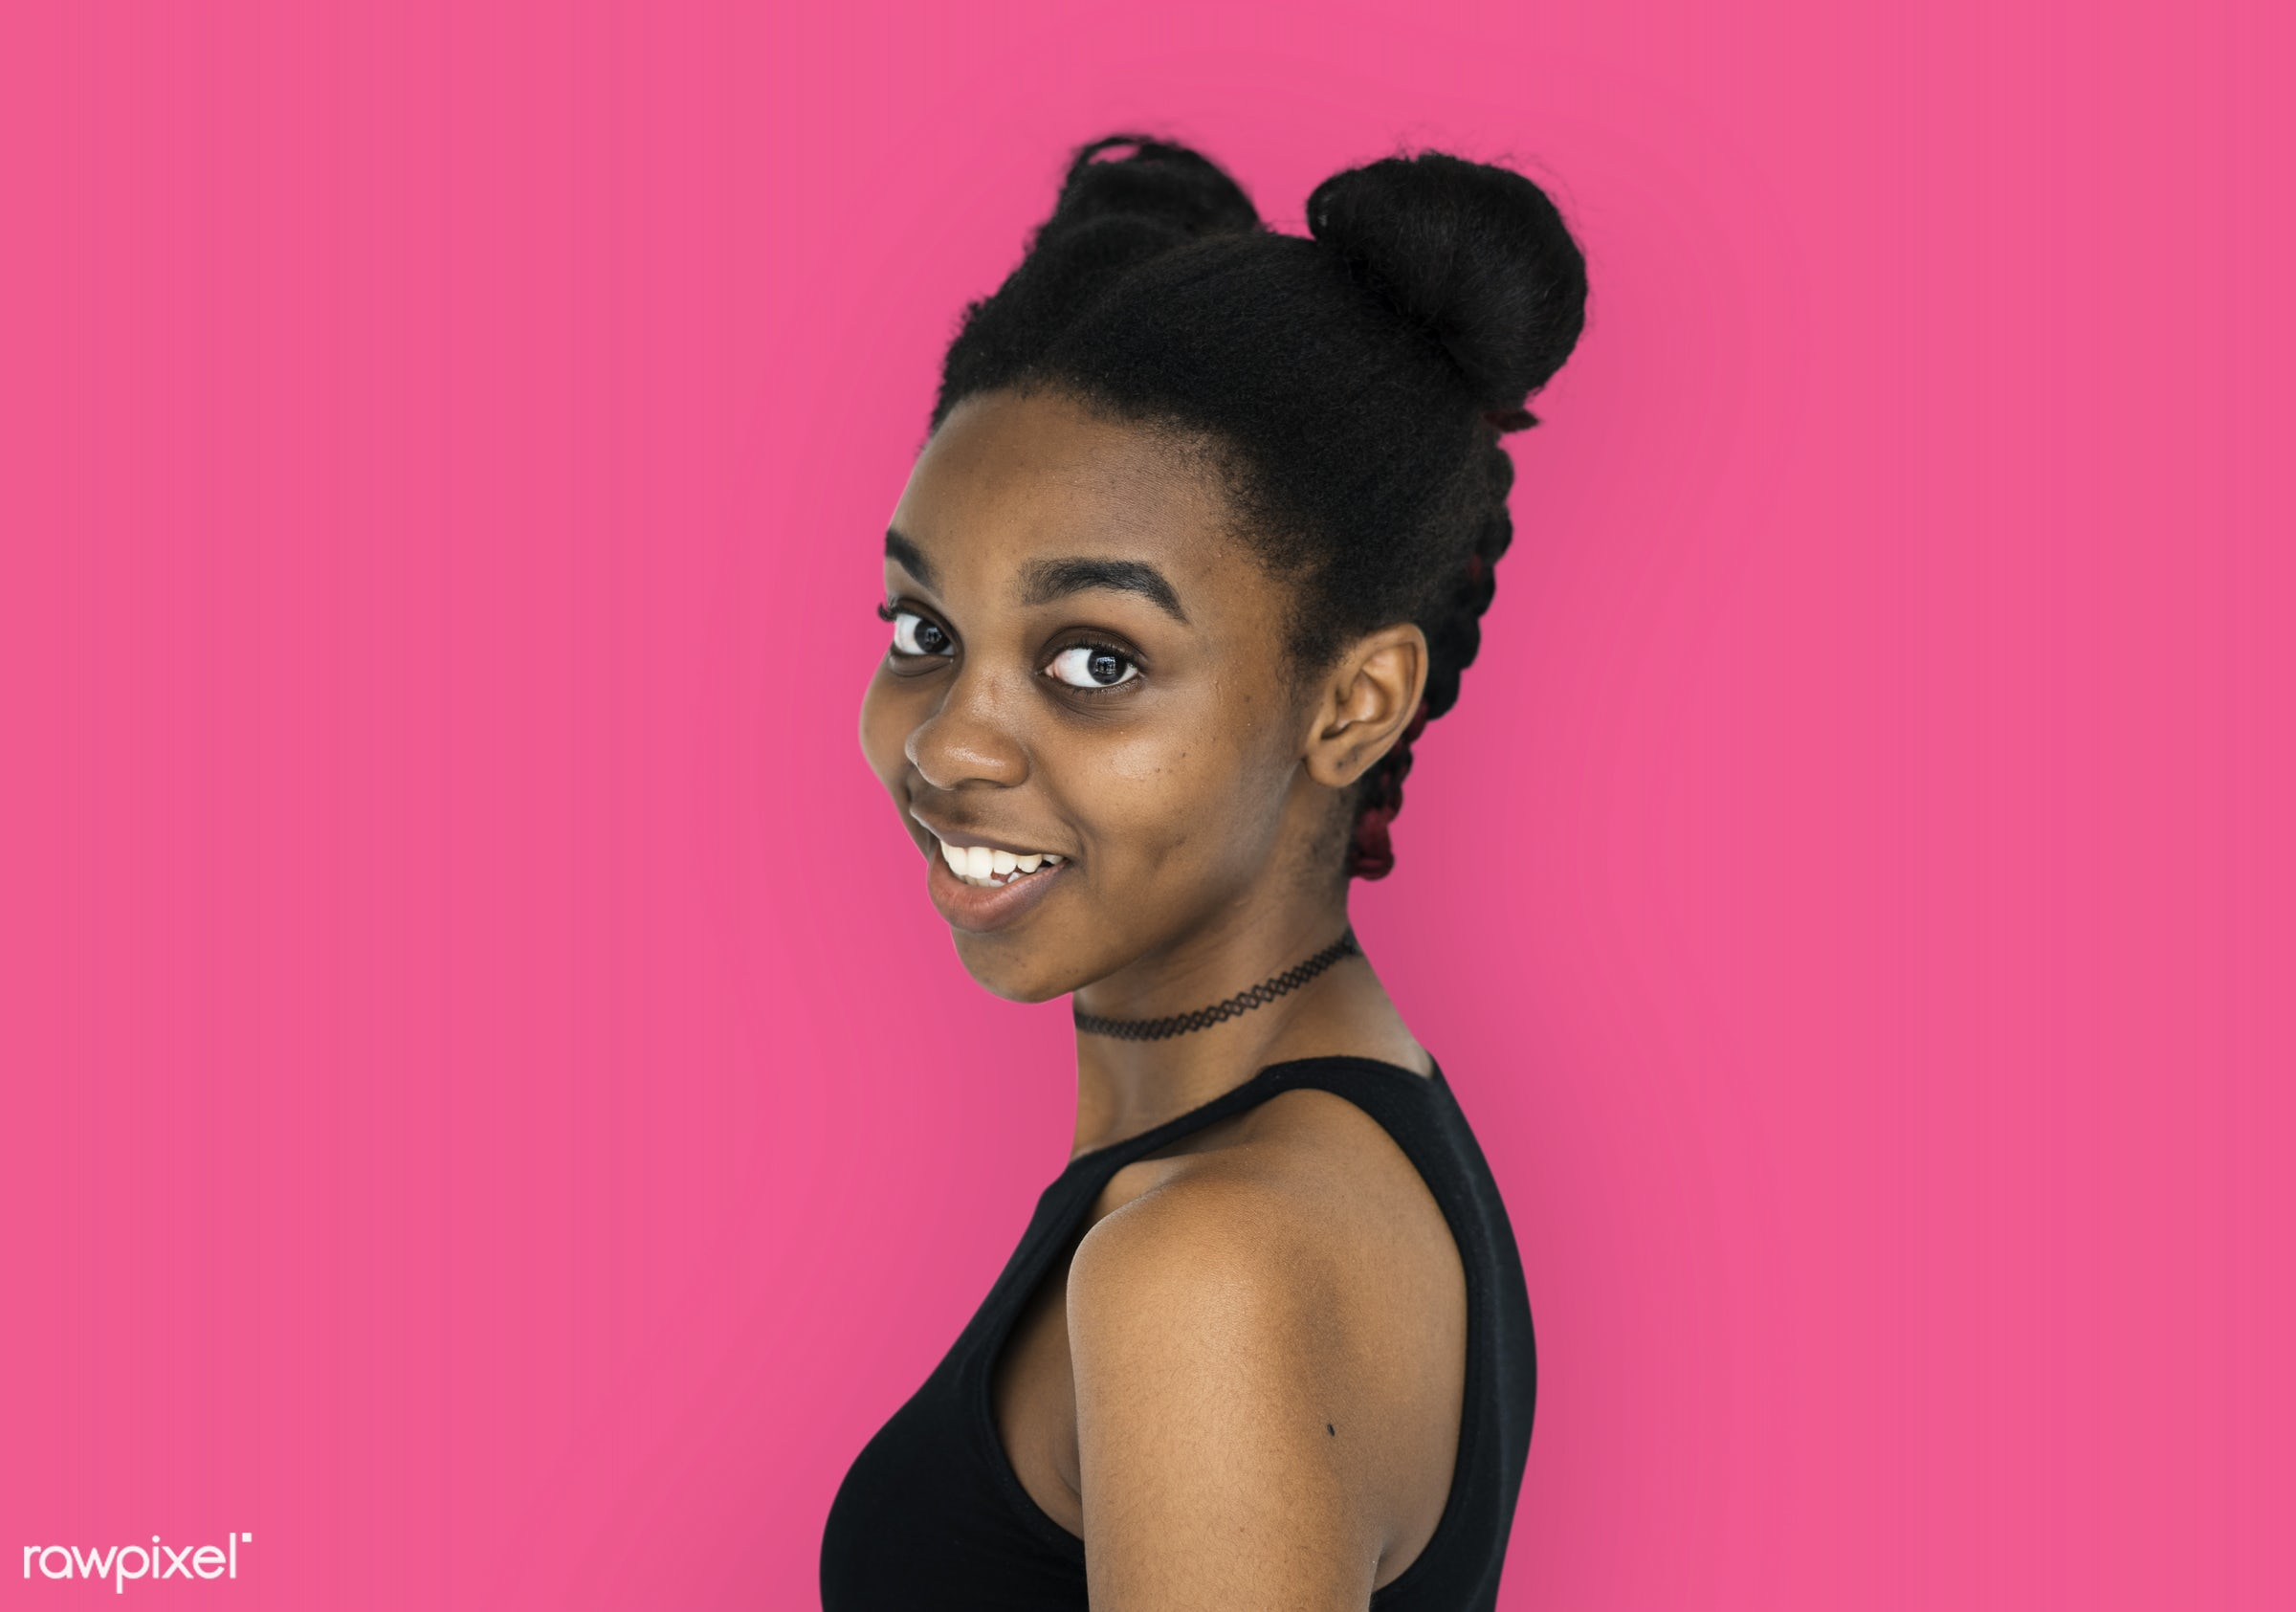 expression, studio, person, people, woman, pink, smile, cheerful, smiling, isolated, buns, african descent, happiness,...